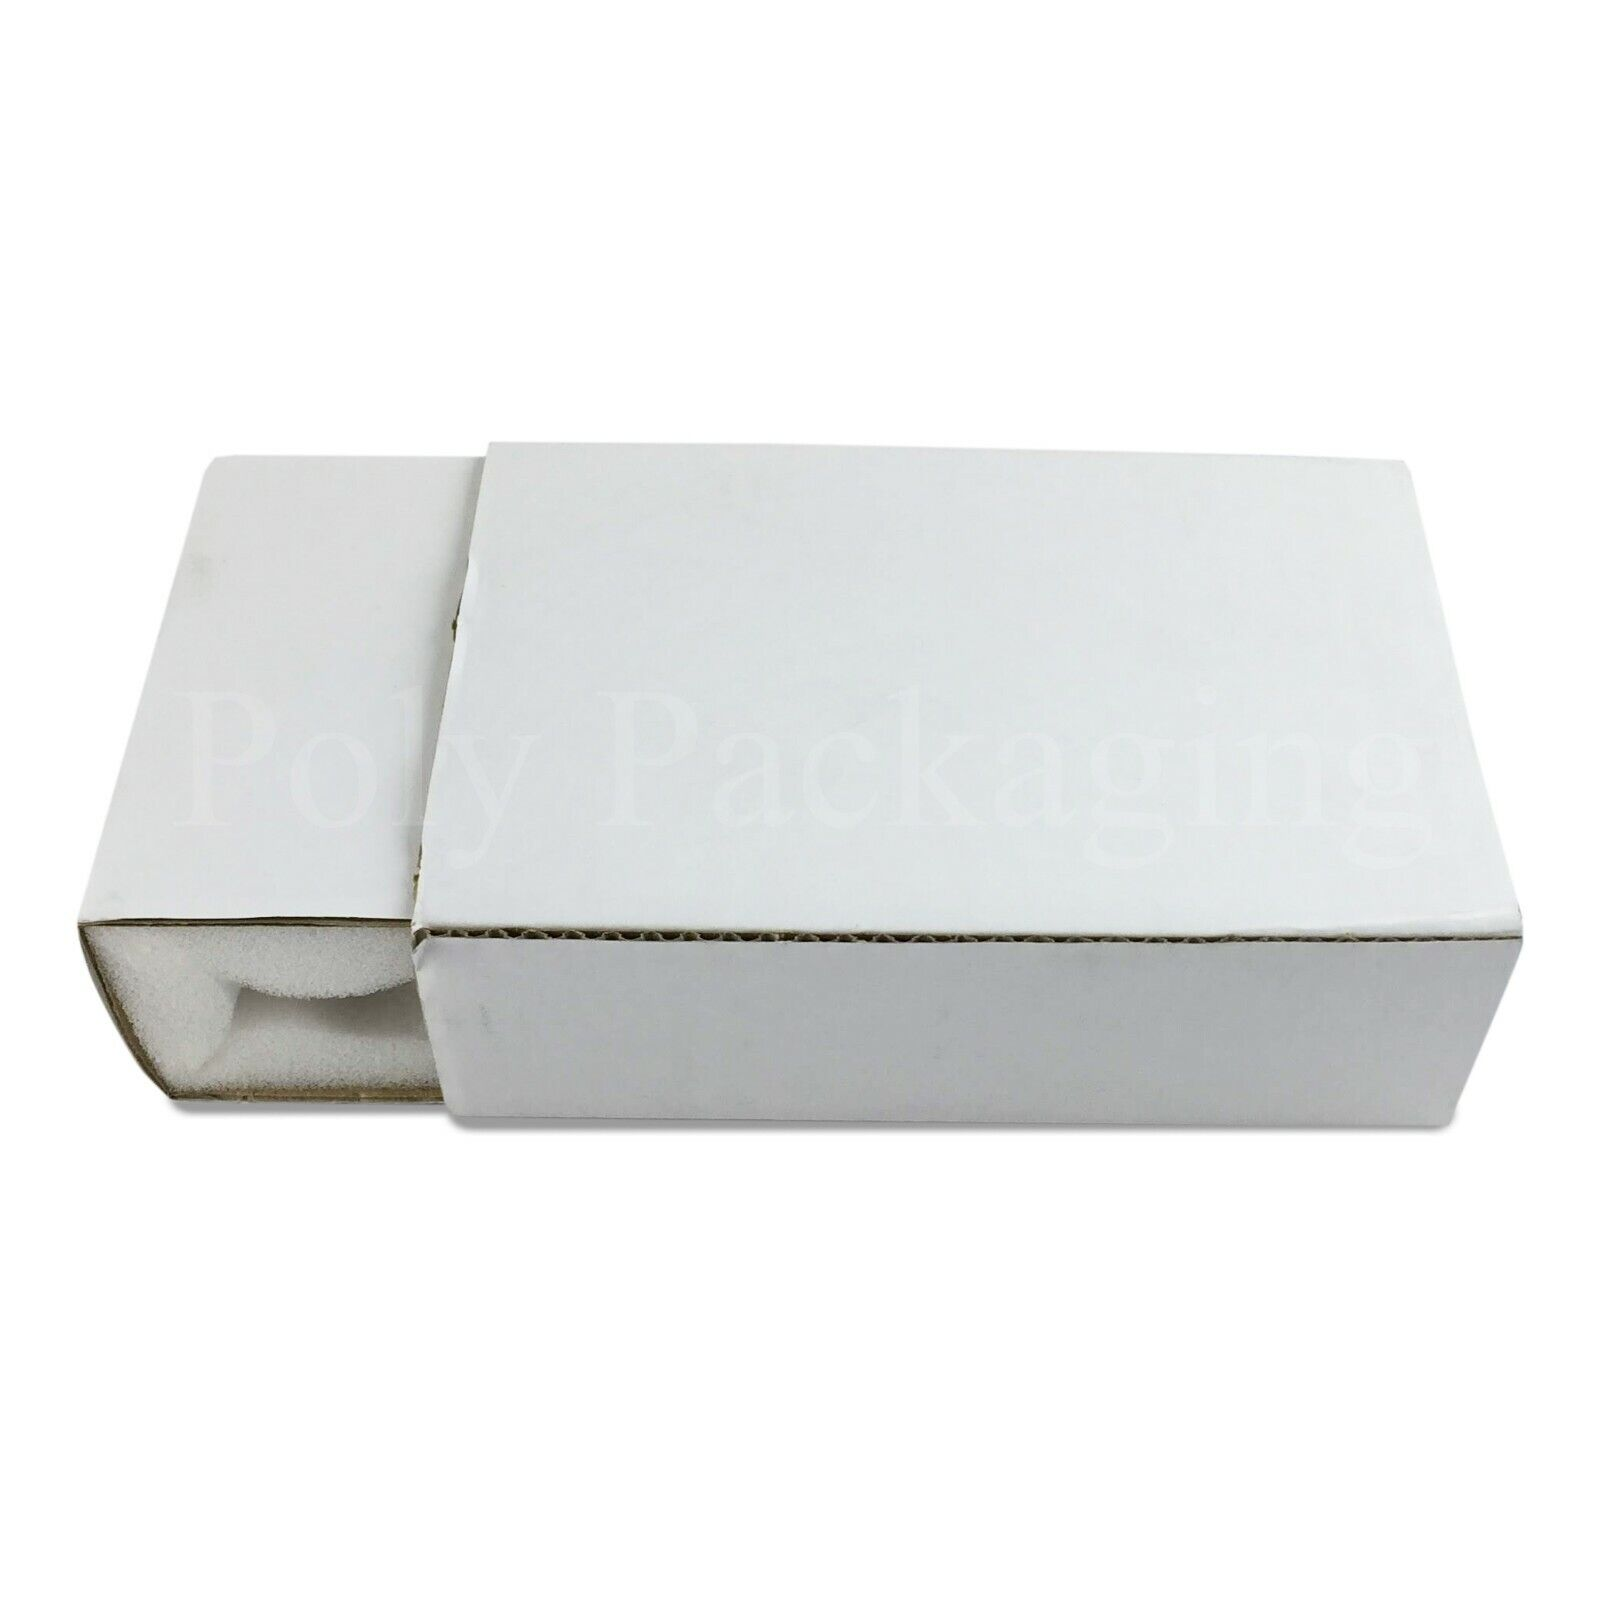 White FOAM LINED Postal Boxes(7x5x2 )Small Shell & Slide PredECTIVE CARTONS